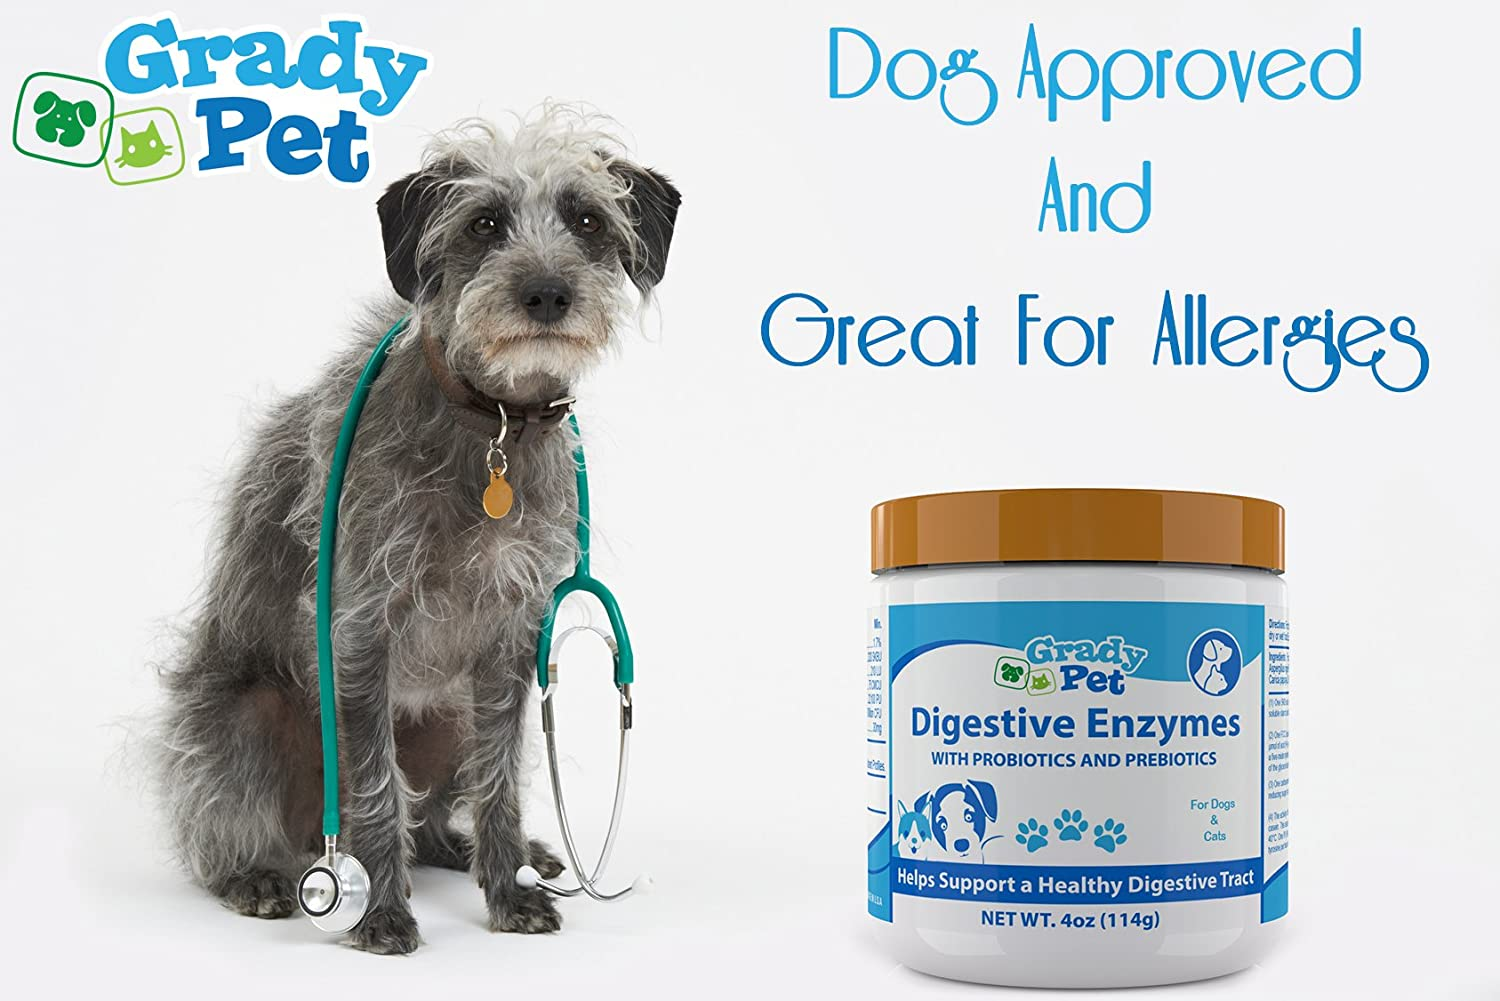 Cool image about enzymes for dogs - it is cool